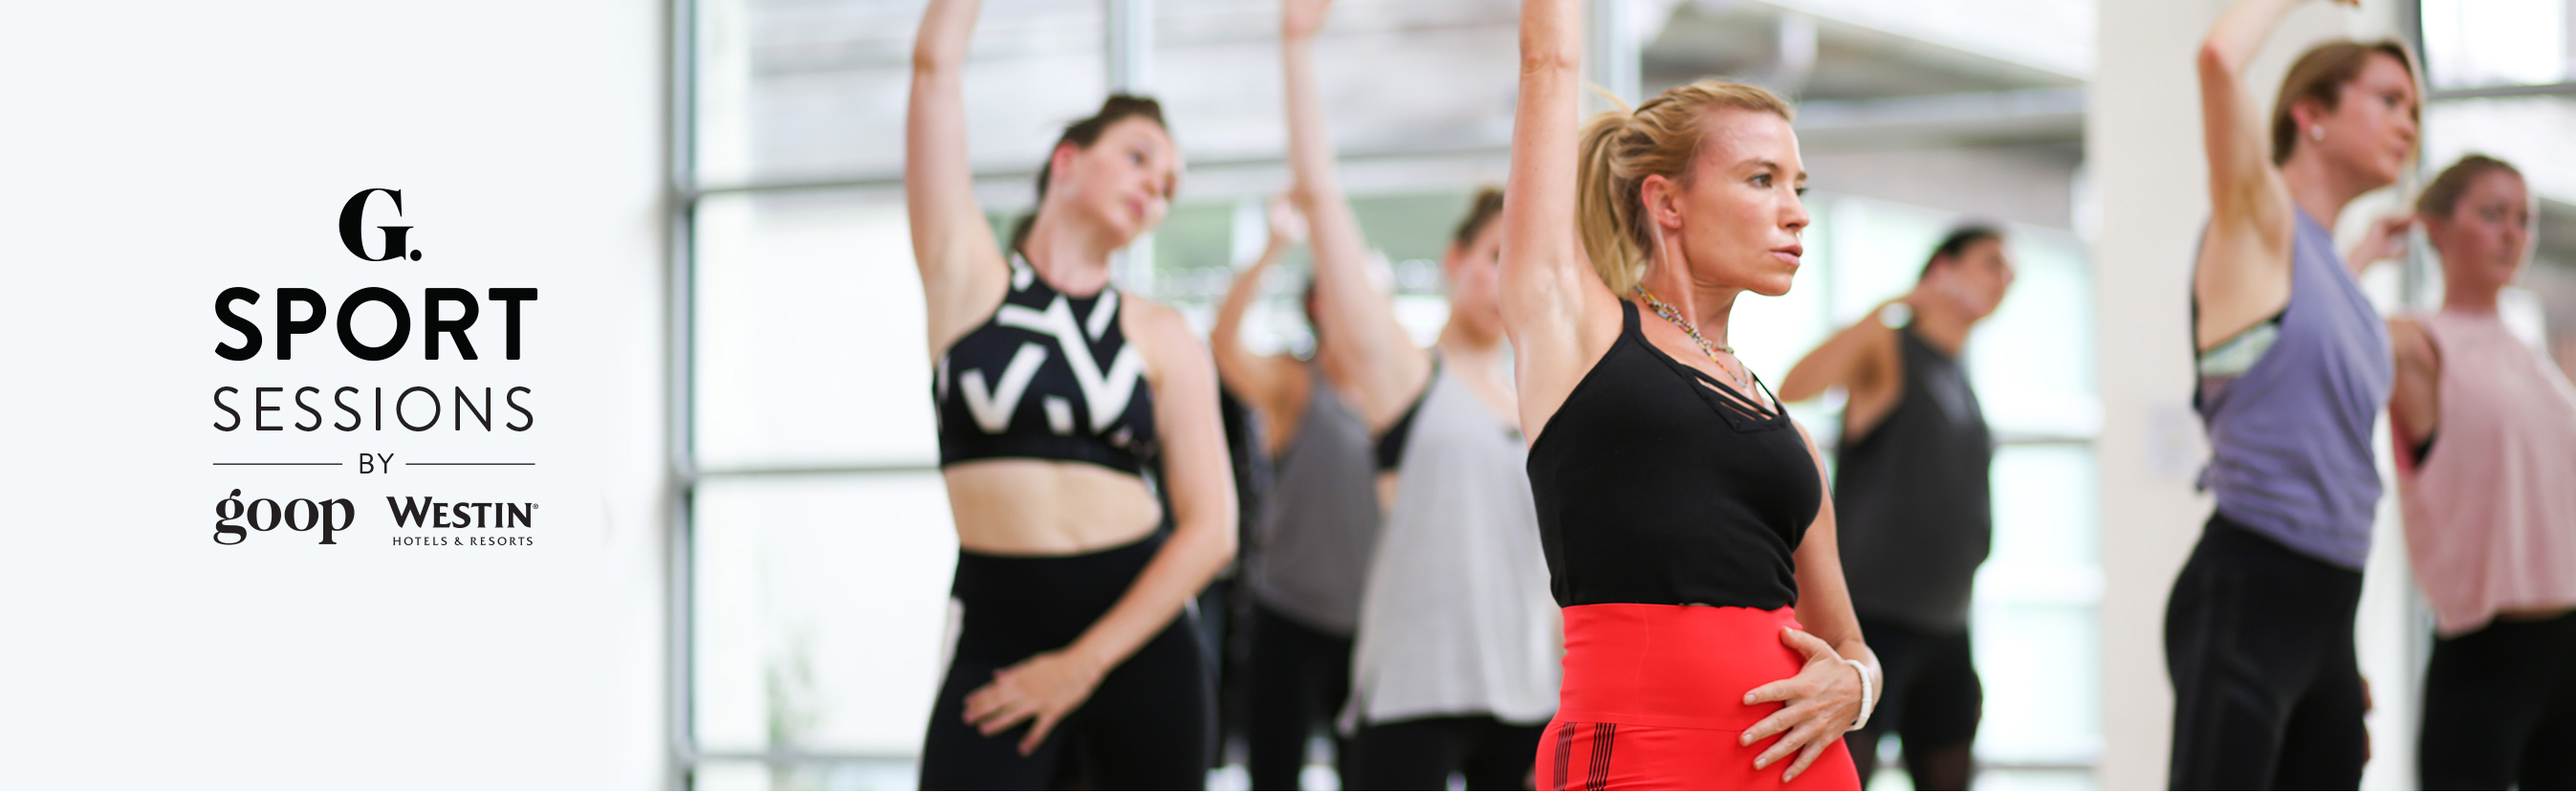 G. Sport Sessions by goop and Westin with Tracey Anderson